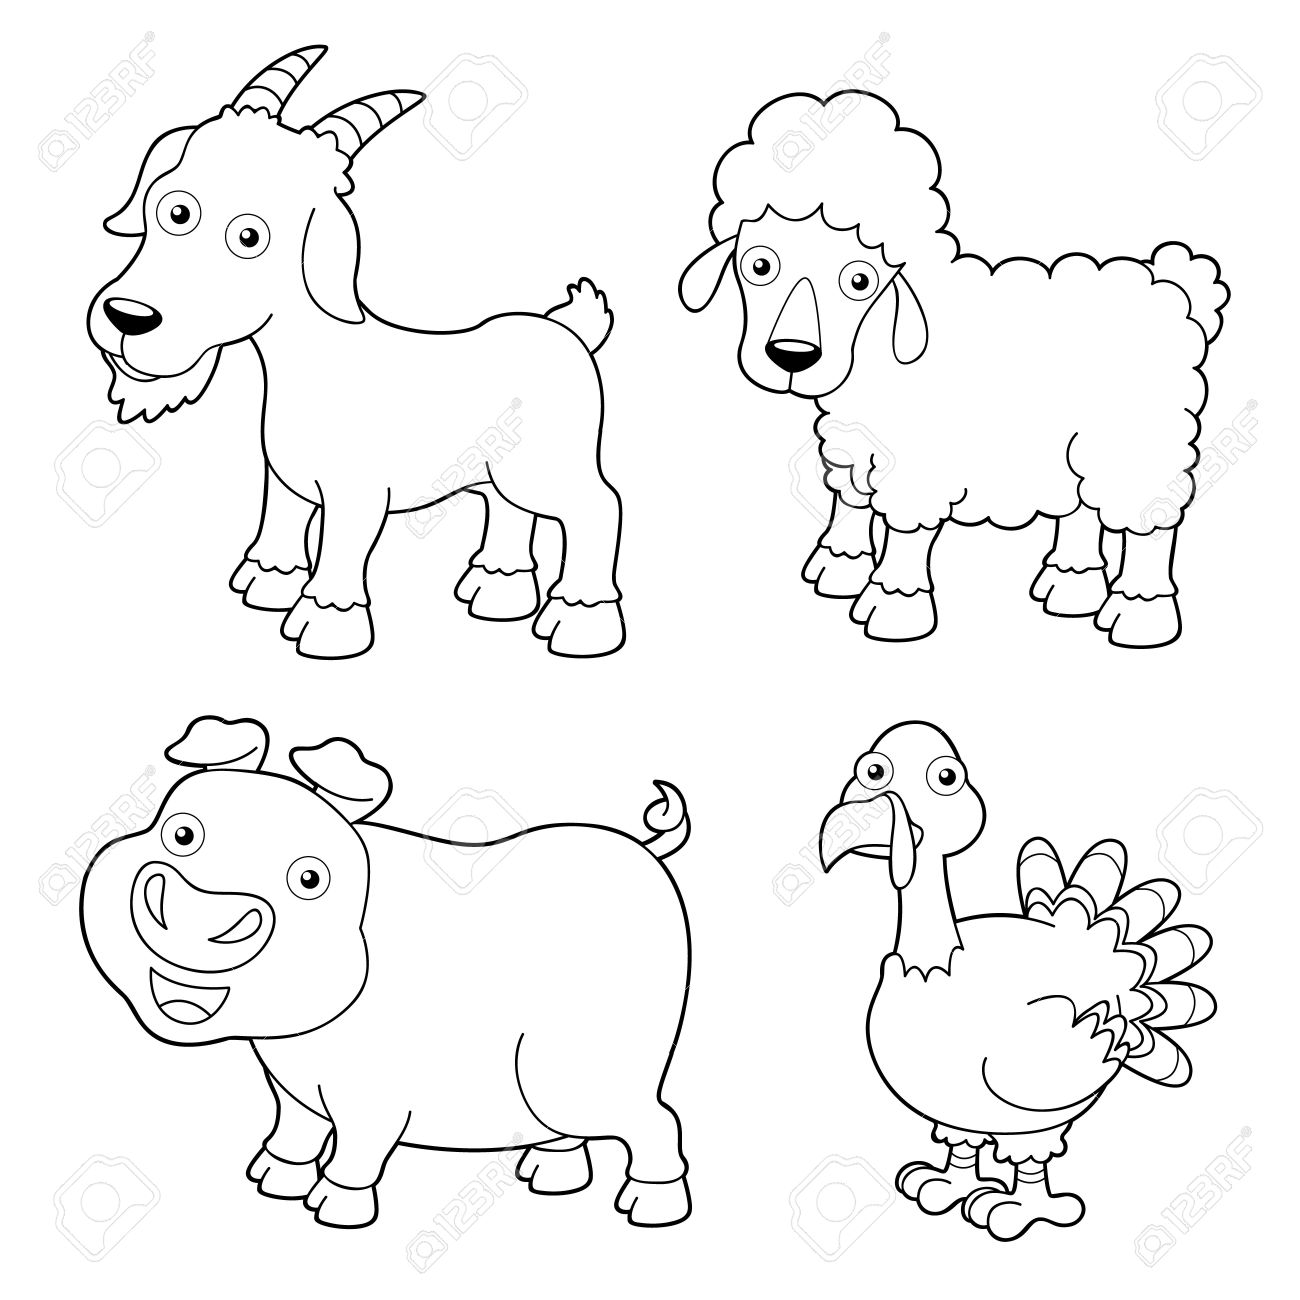 1300x1300 Advice Pictures Of Farm Animals To Color Free Printable Animal